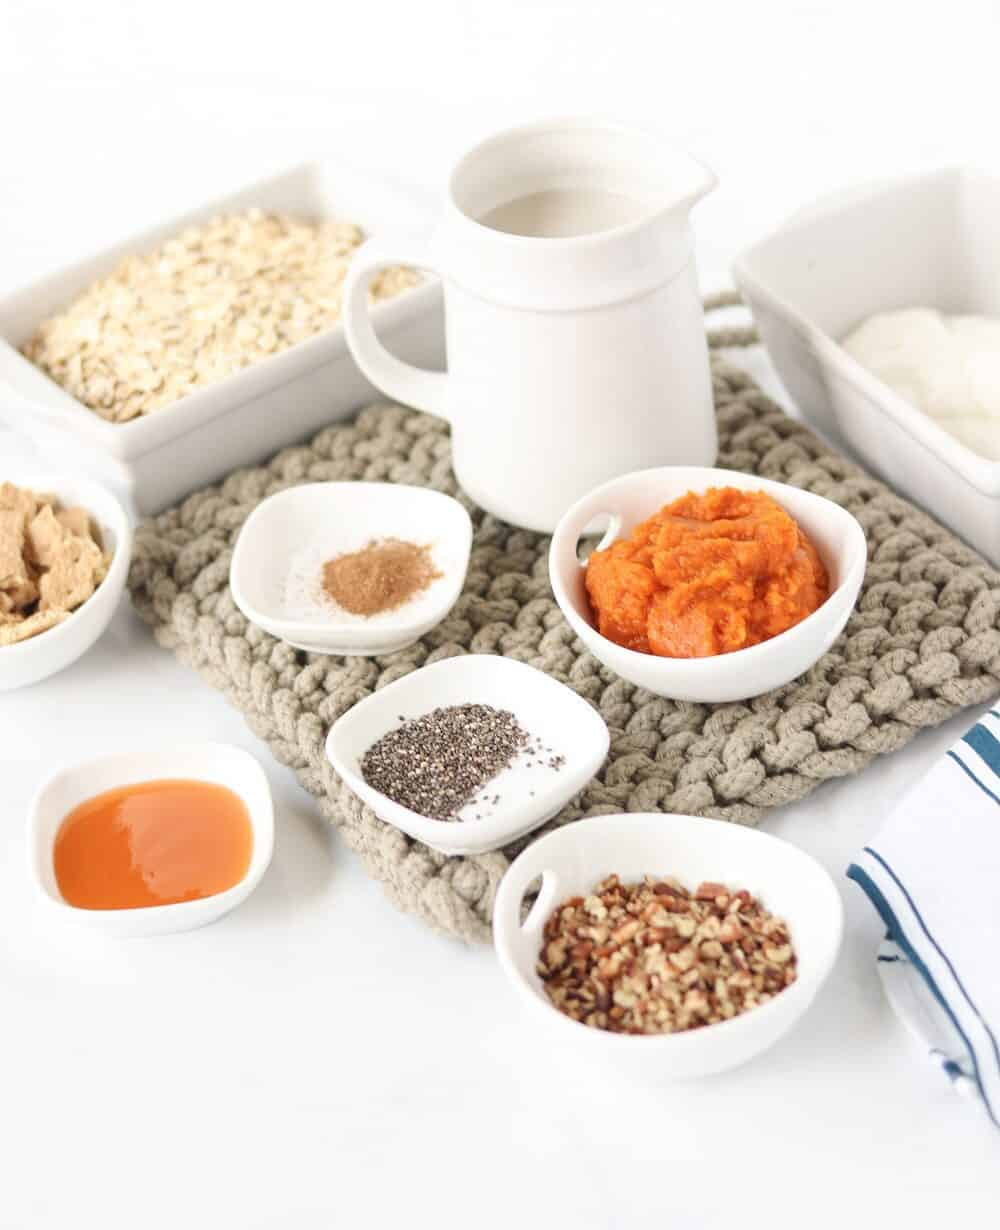 Ingredients to make caramel pumpkin overnight oats